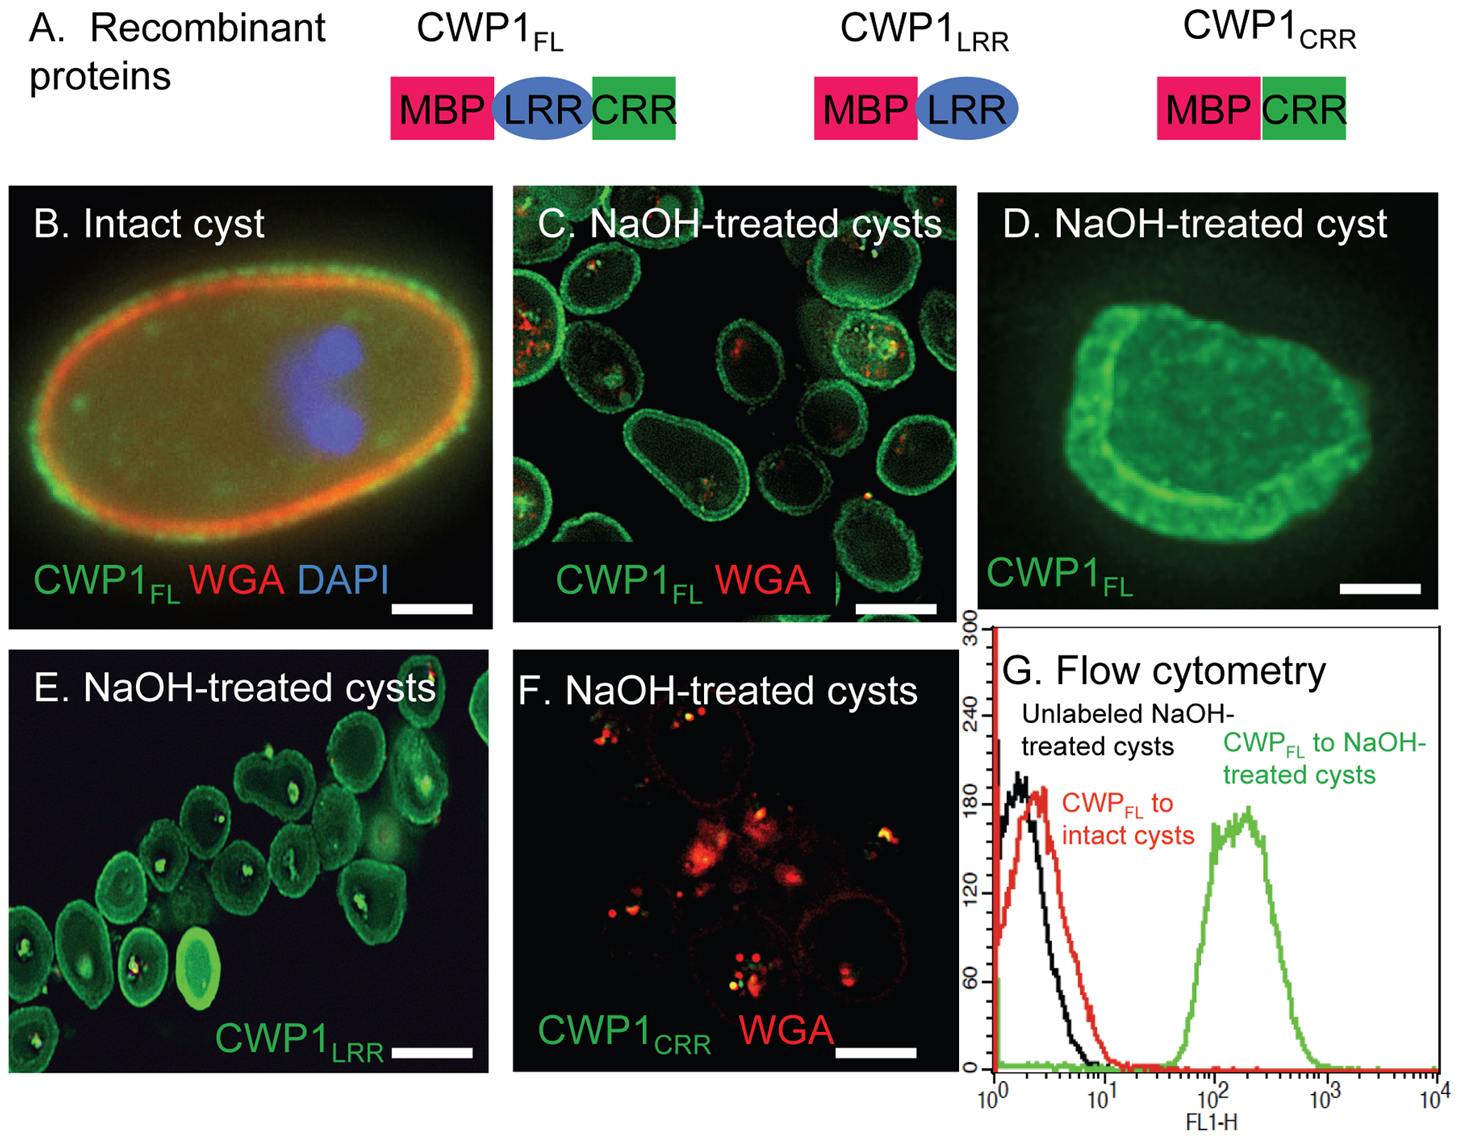 <i>N</i>-terminal Leu-rich repeats of <i>Giardia</i> CWP1 (CWP1<sub>LRR</sub>) form a lectin domain that binds to deproteinated fibrils of the GalNAc homopolymer.